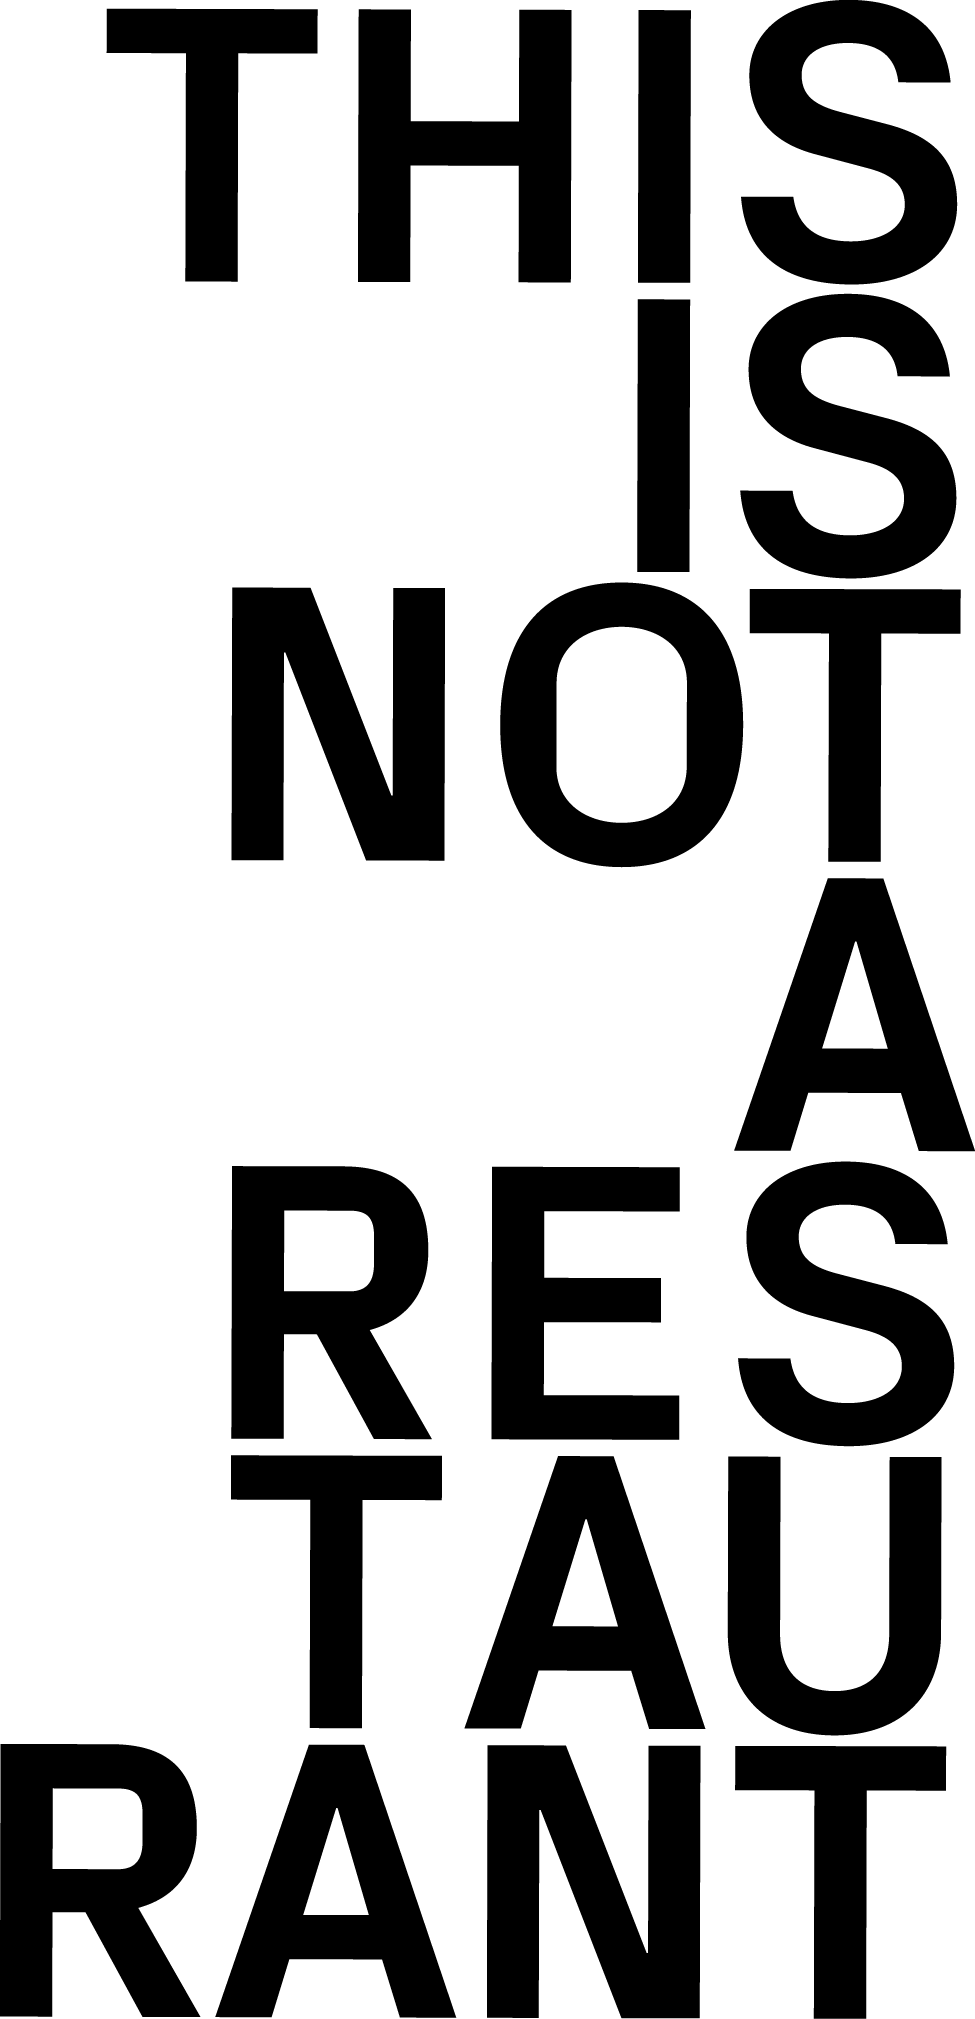 THIS IS NOT A RESTAURANT